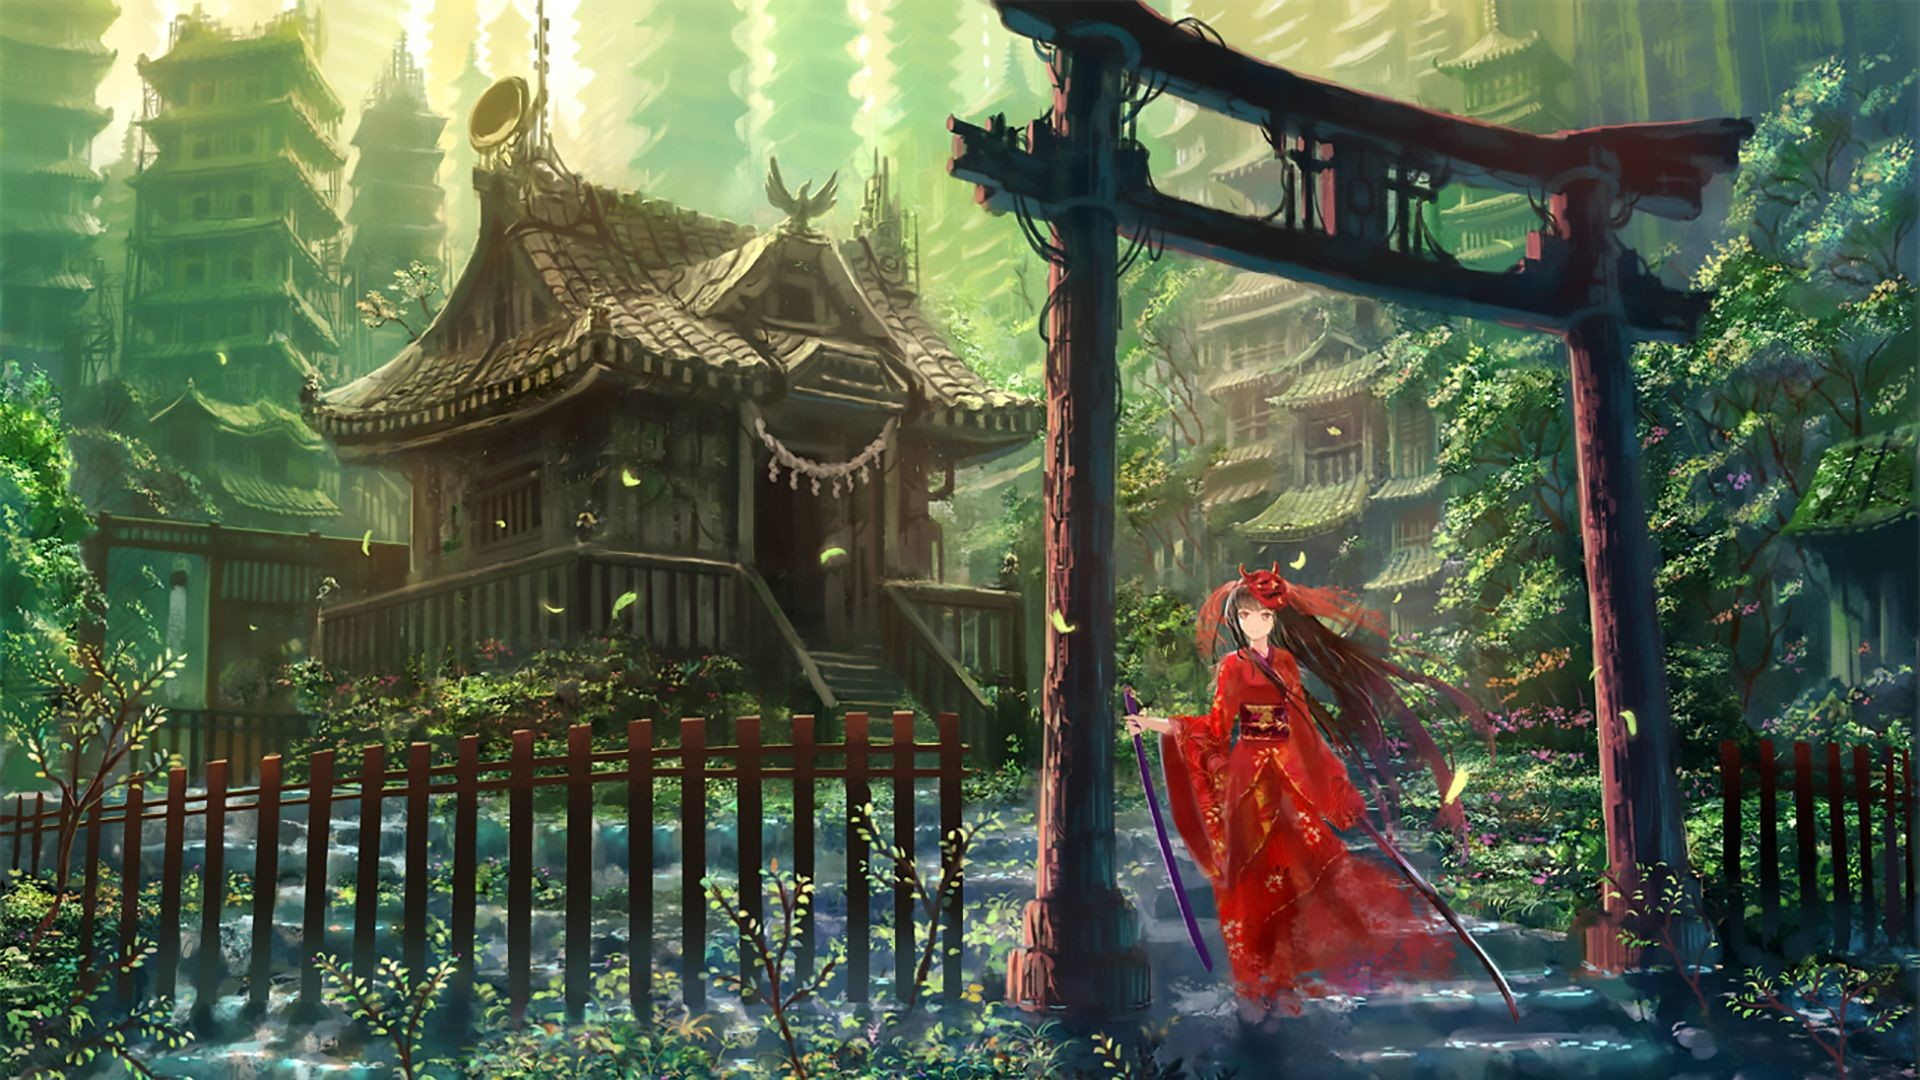 Japan Anime Background Posted By Zoey Peltier